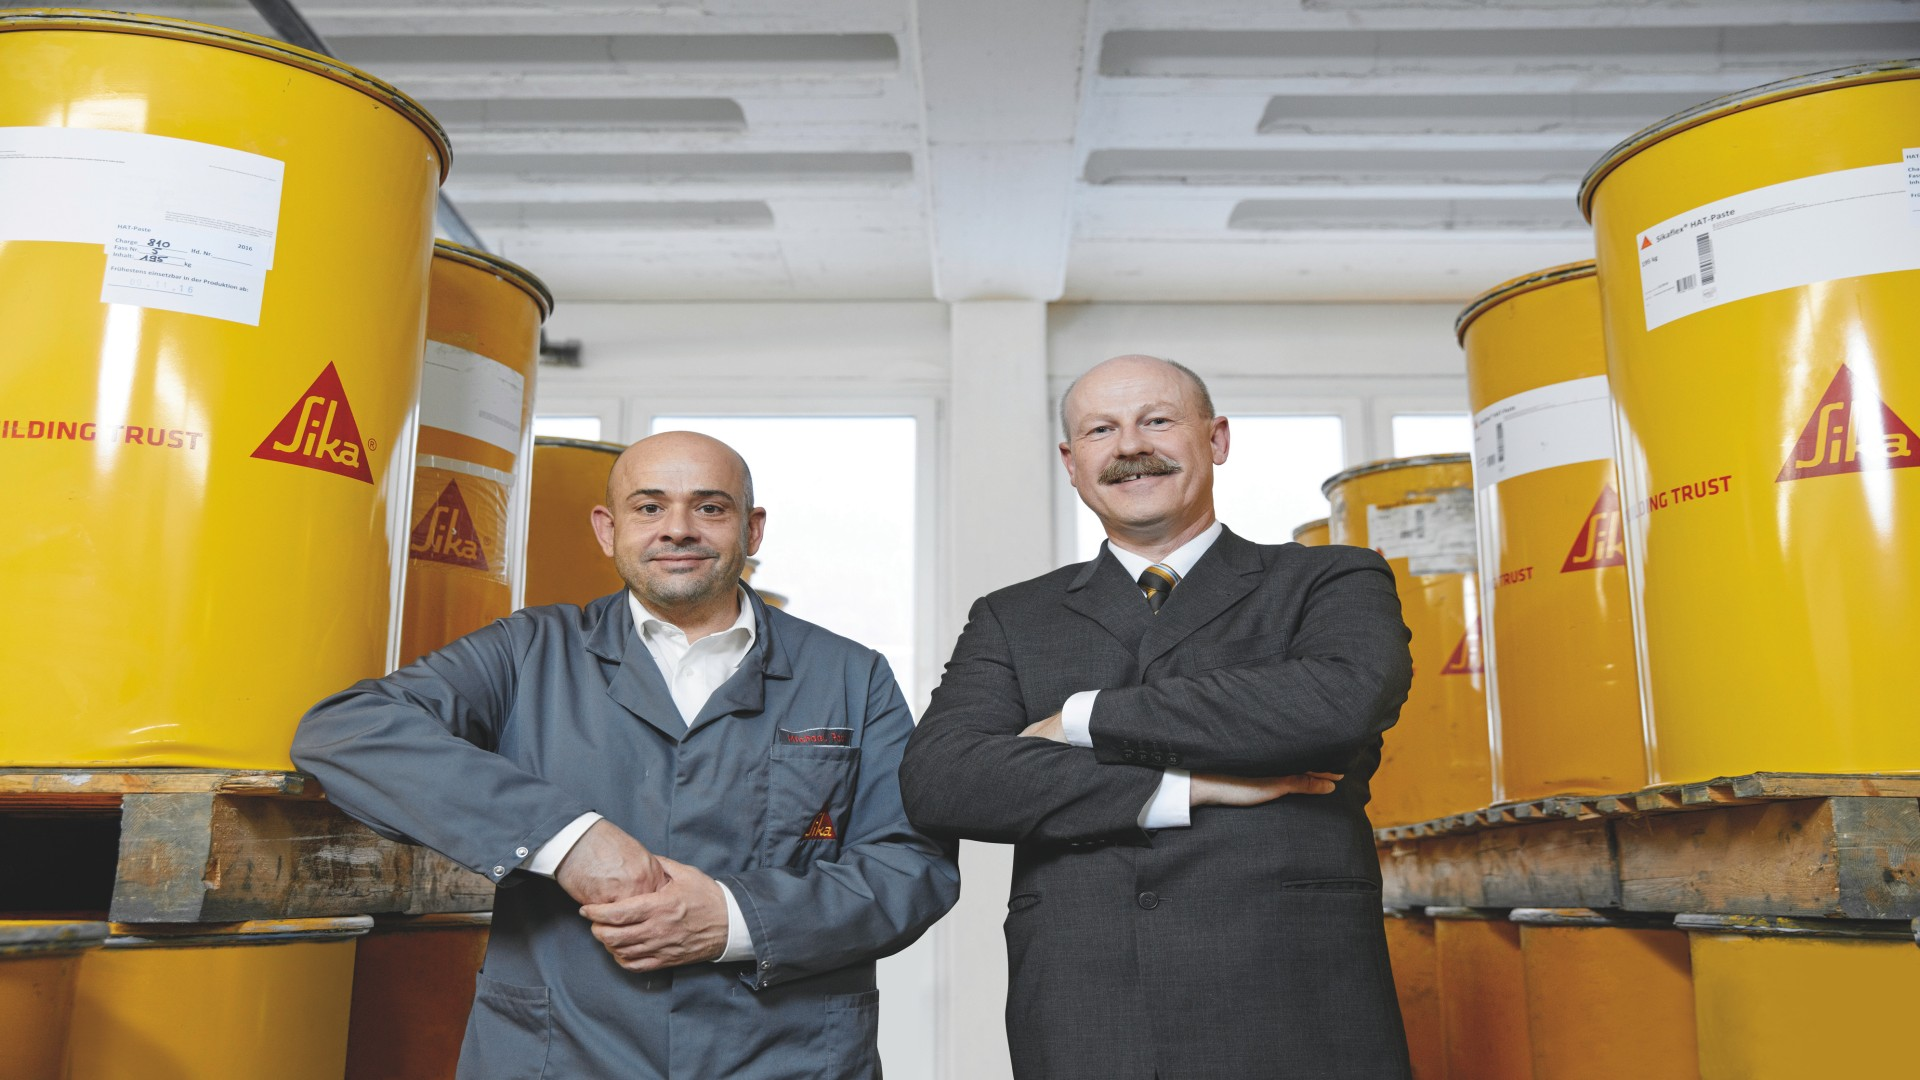 Michael Rath, plant manager at the Bad Urach site and Atilla Böhm, fleet manager